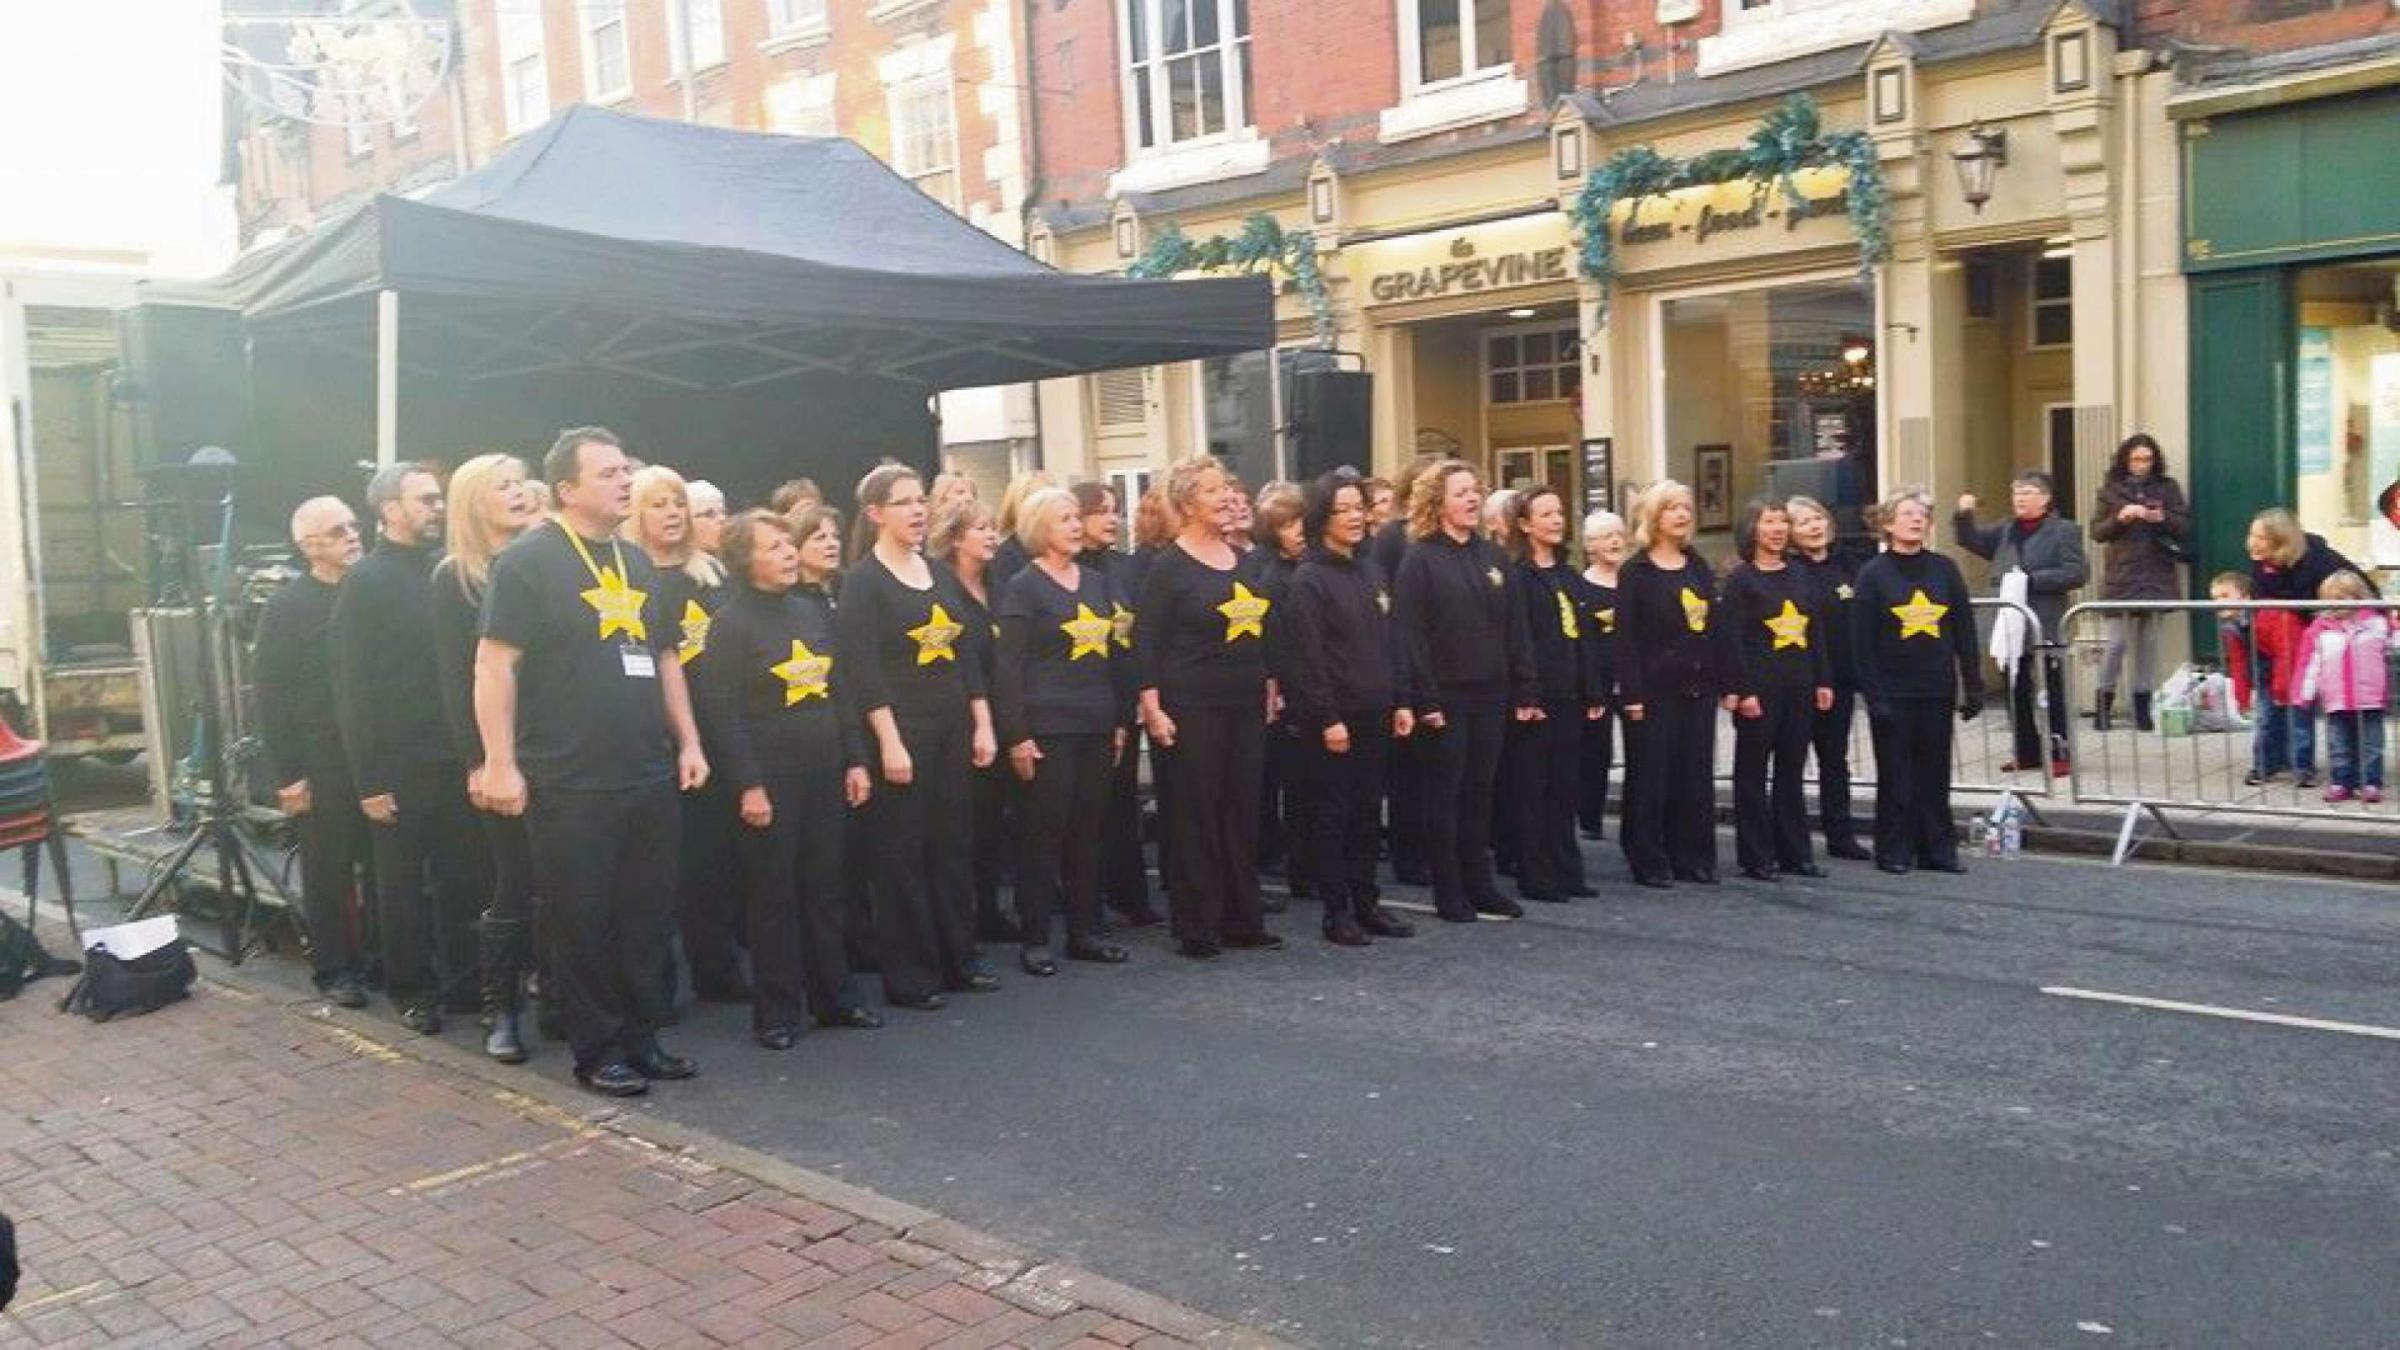 The Rock Choir members will be playing their part in a world record attempt. SP